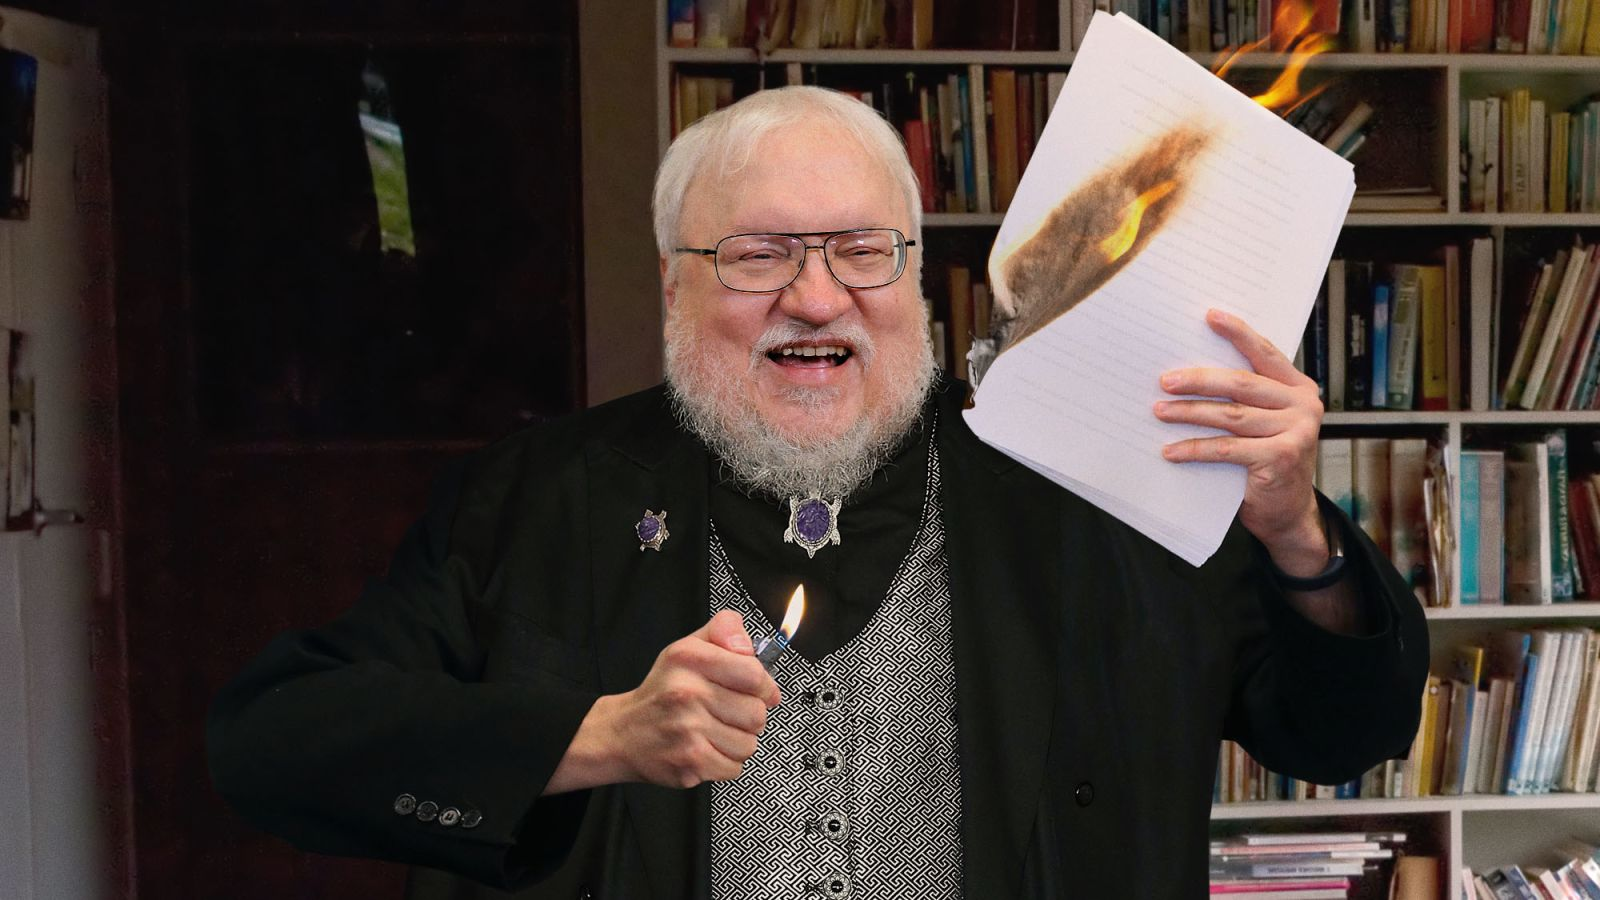 George RR Martin is in Final Stages of Editing The Winds of Winter Draft